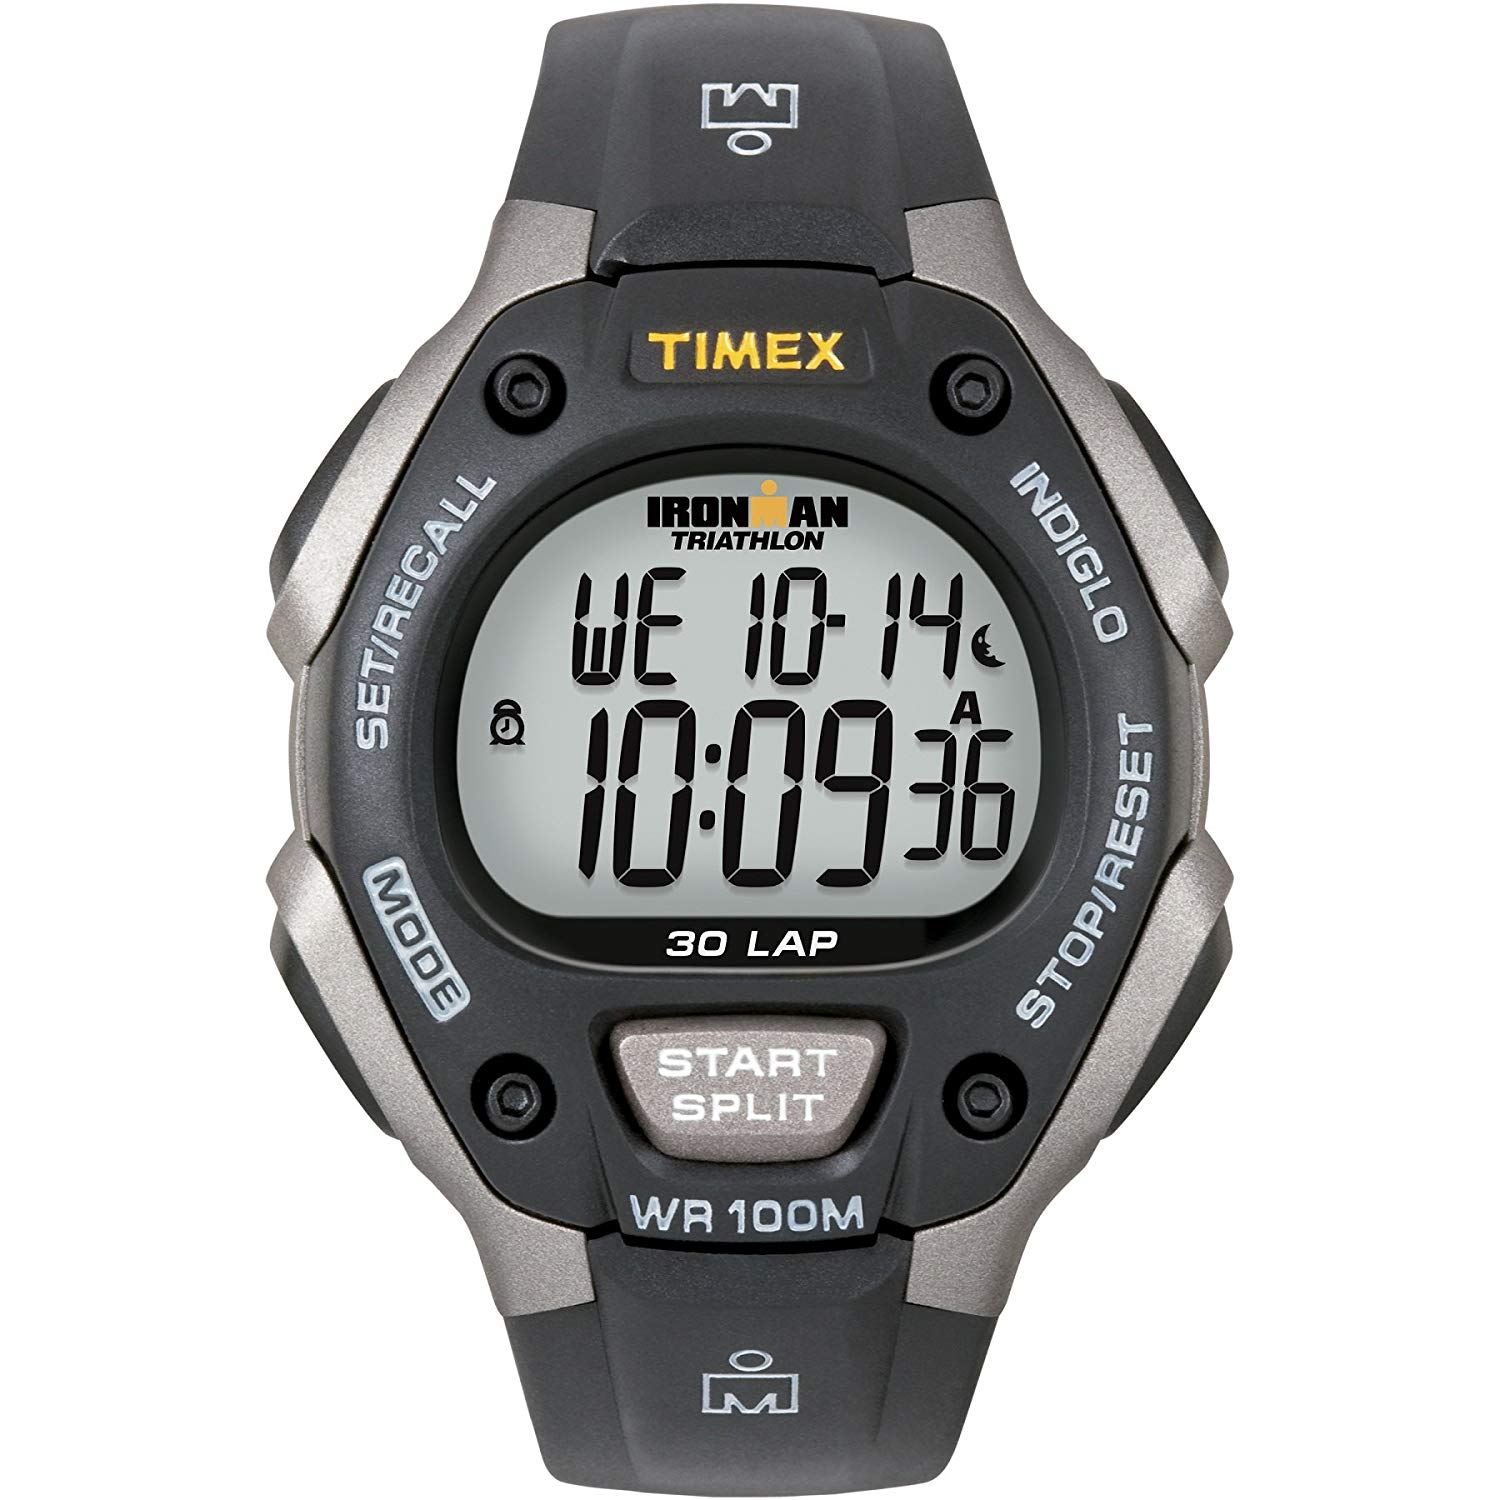 Timex Ironman Classic 30 Full-Size Watch - Online Shopping in Pakistan:  Electronics |Watches|Headphones|Computer-Components